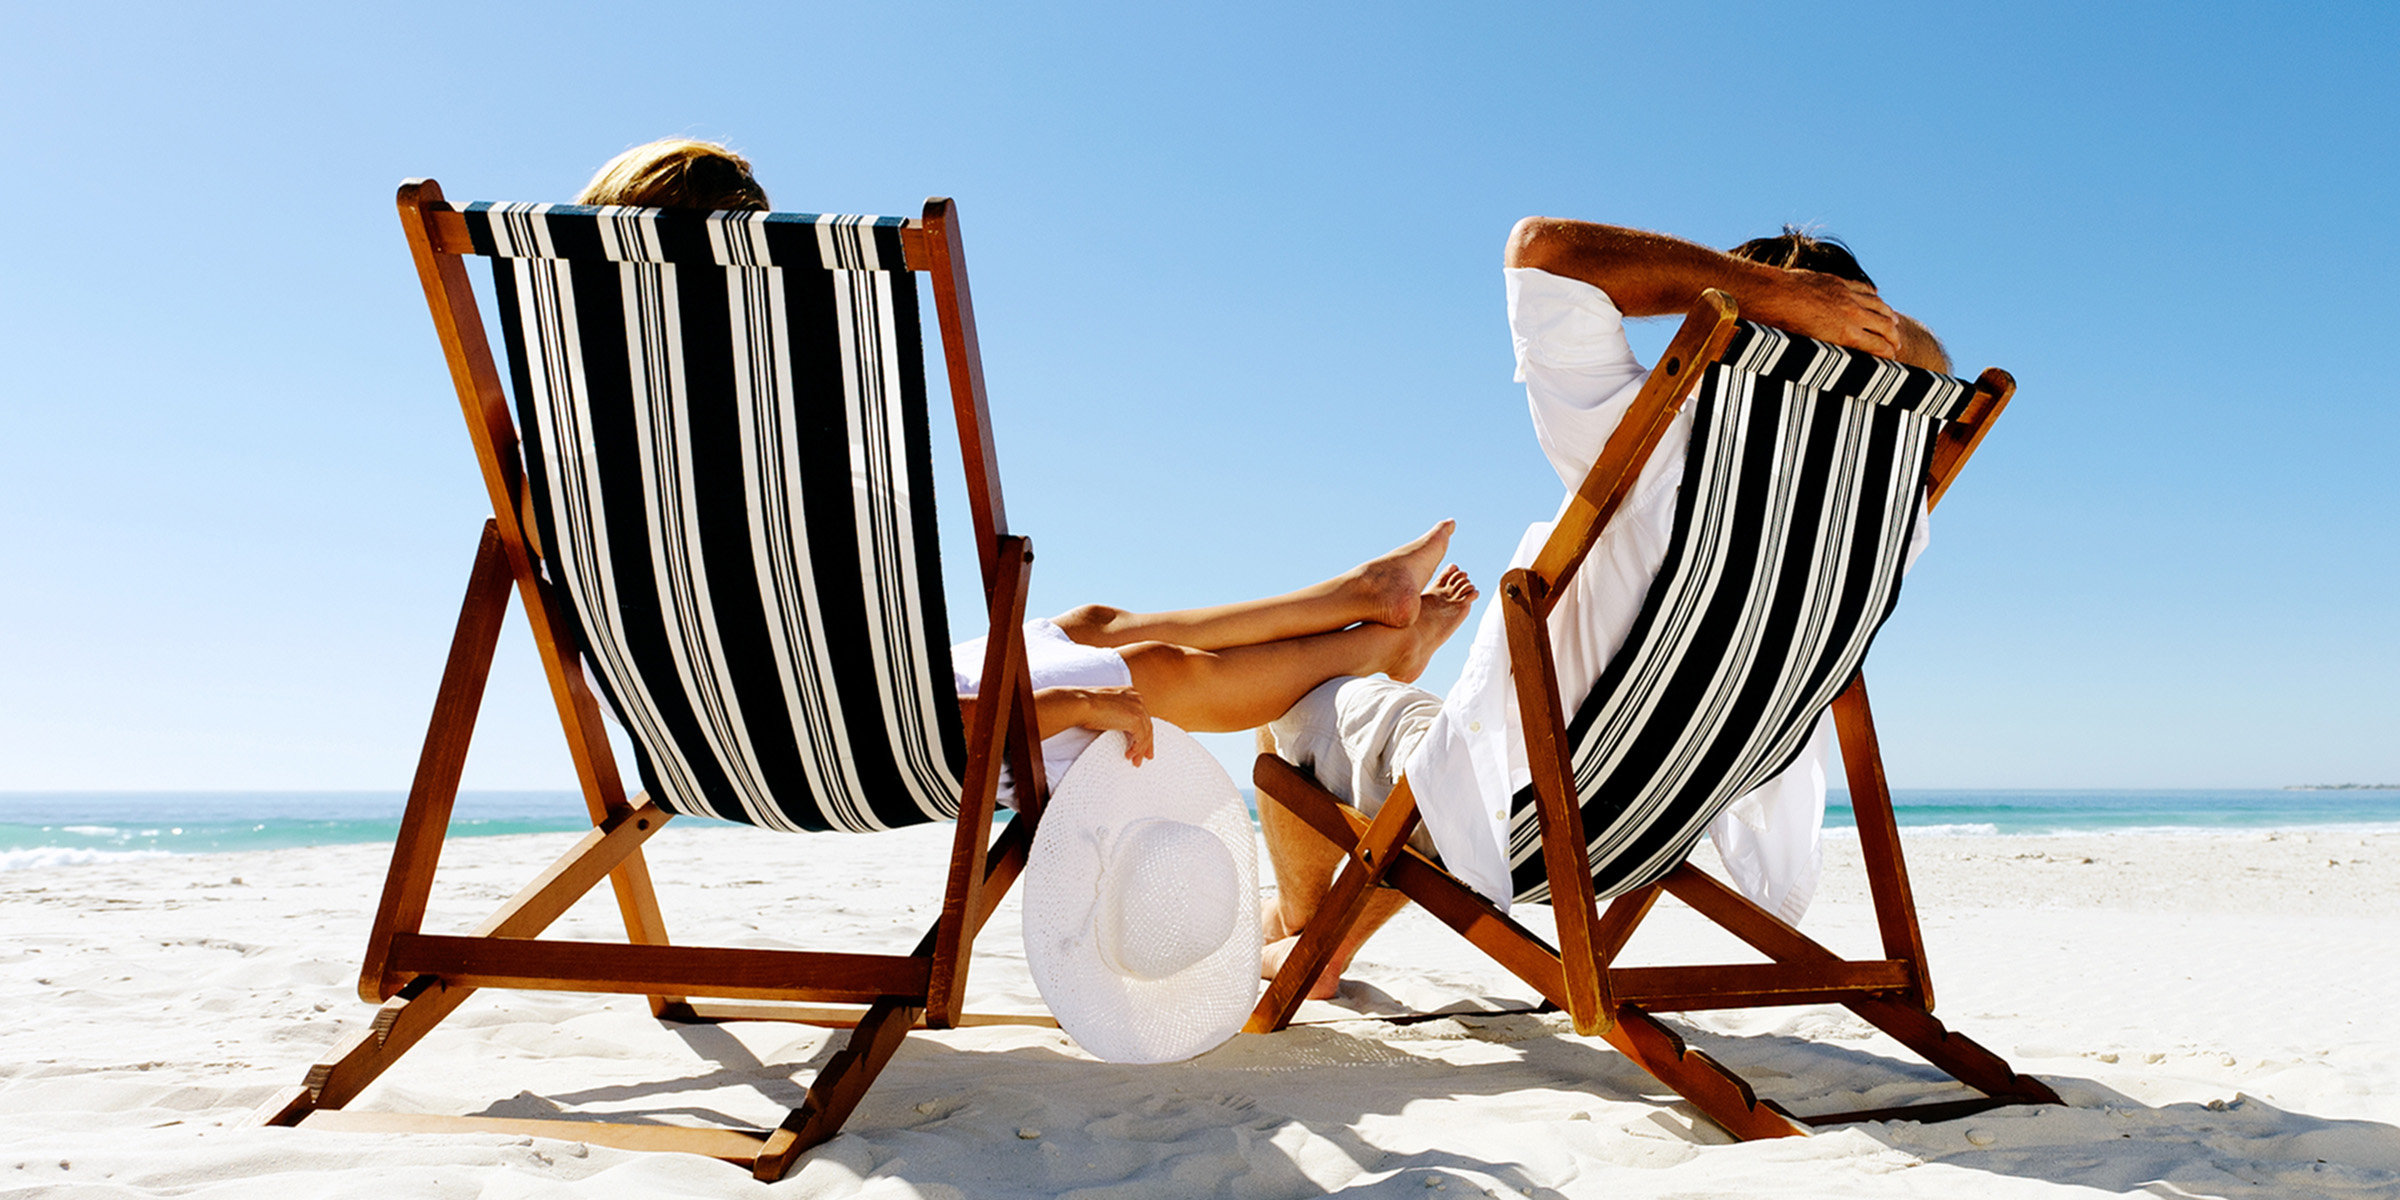 Favorite Deluxe Padded Chairs With Canopy And Tray Intended For The Best Chairs For The Beach  (View 14 of 25)